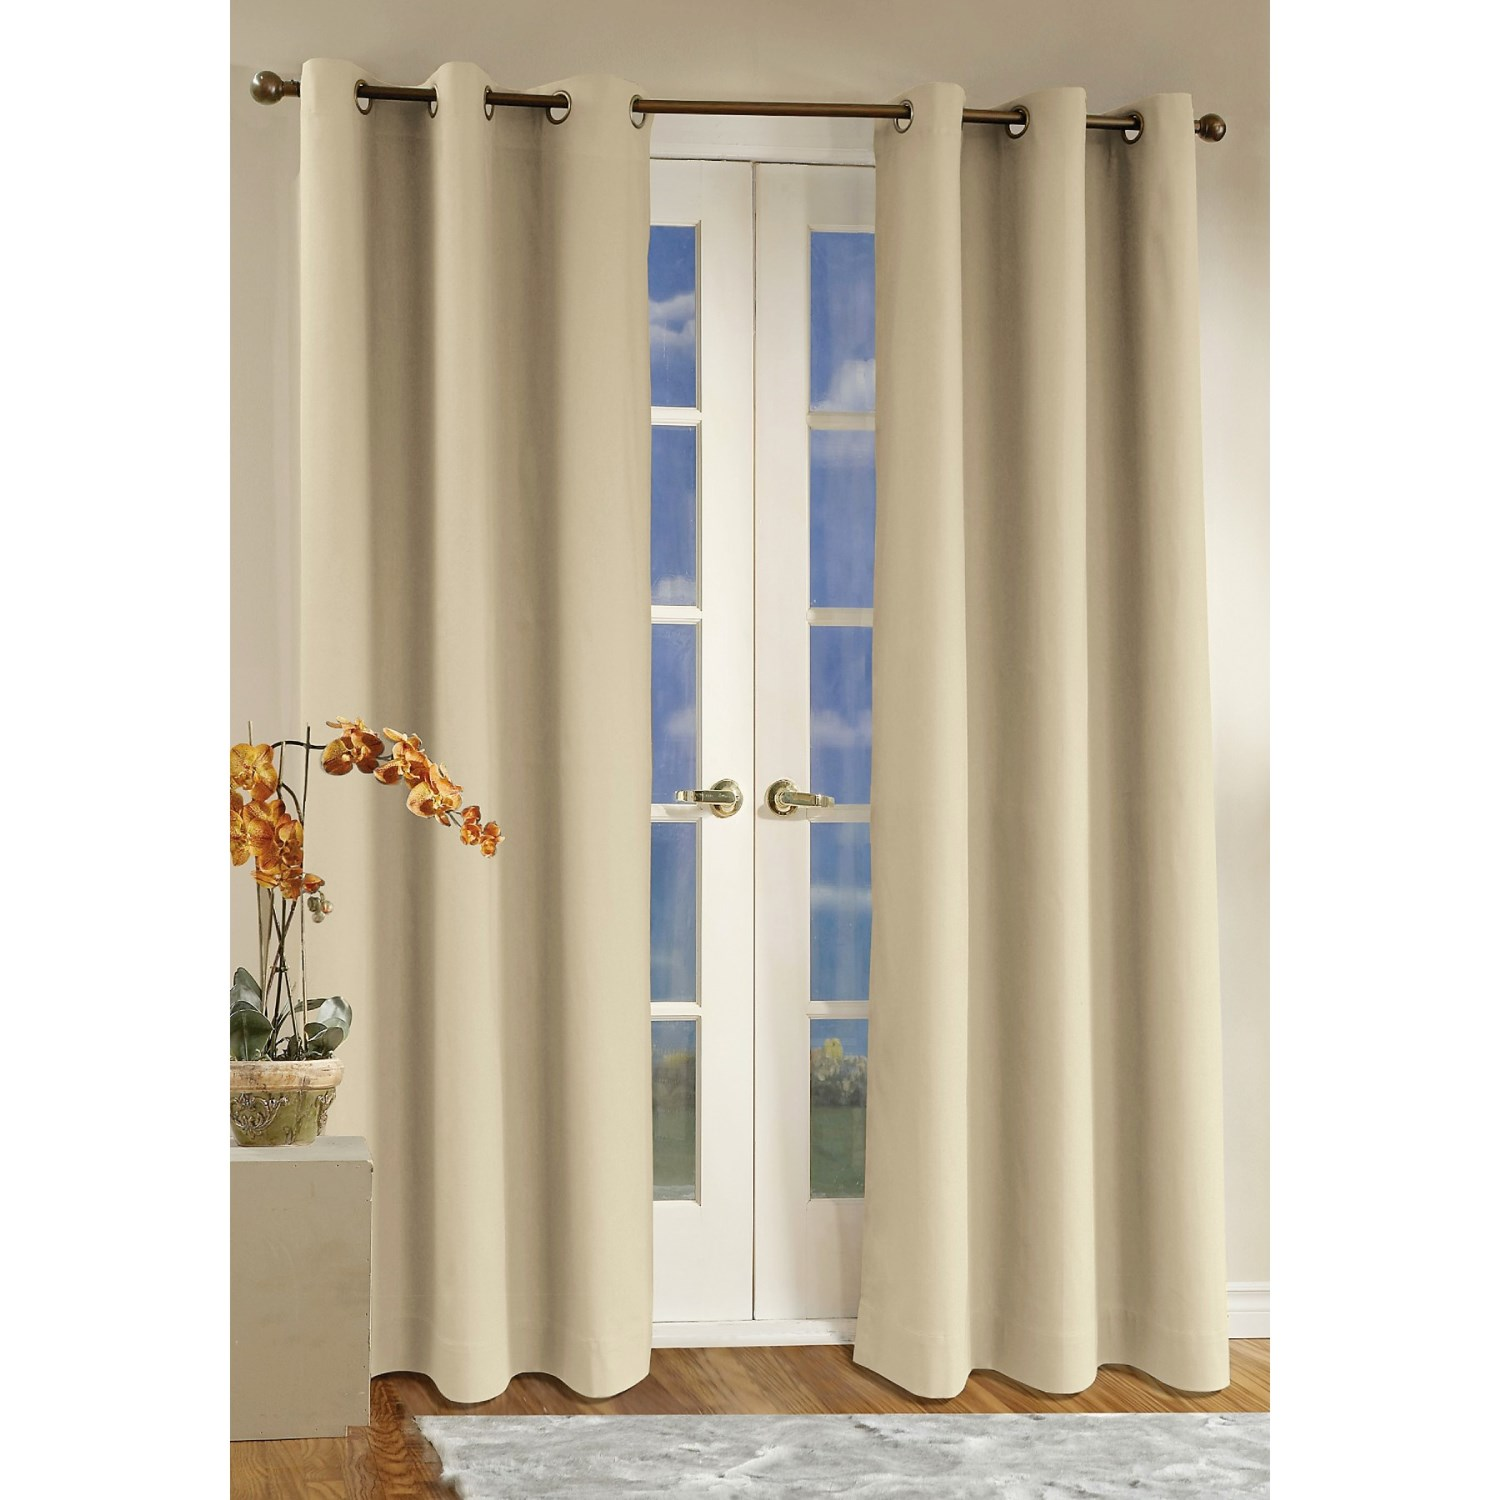 Thermalogic weathermate curtain 80x63 grommet top for Best sliding glass doors